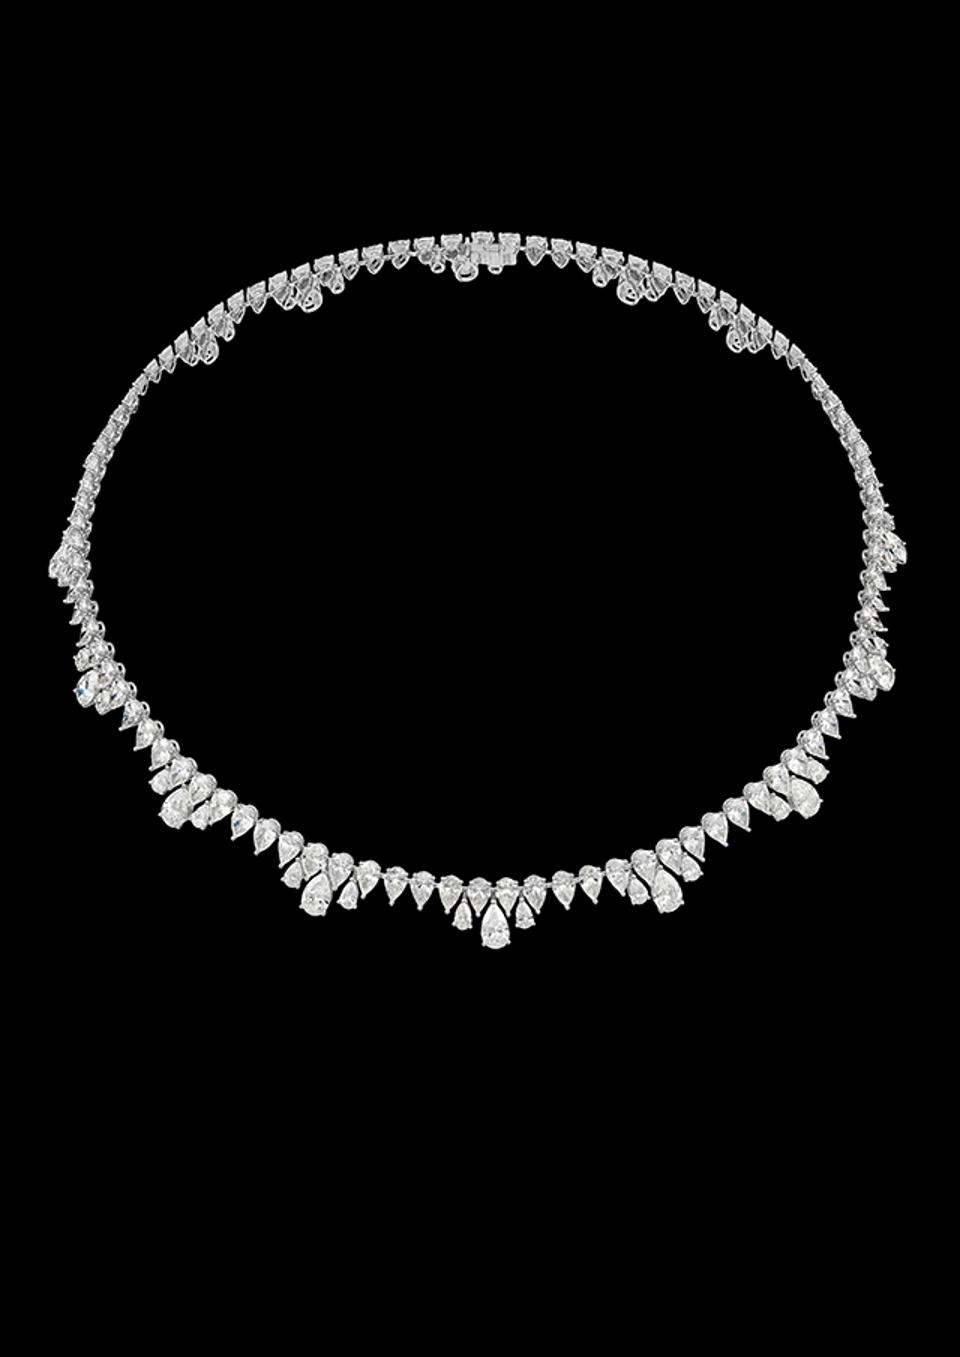 Chopard diamond necklace from the Green Carpet collection. It will star in the next James Bond film.